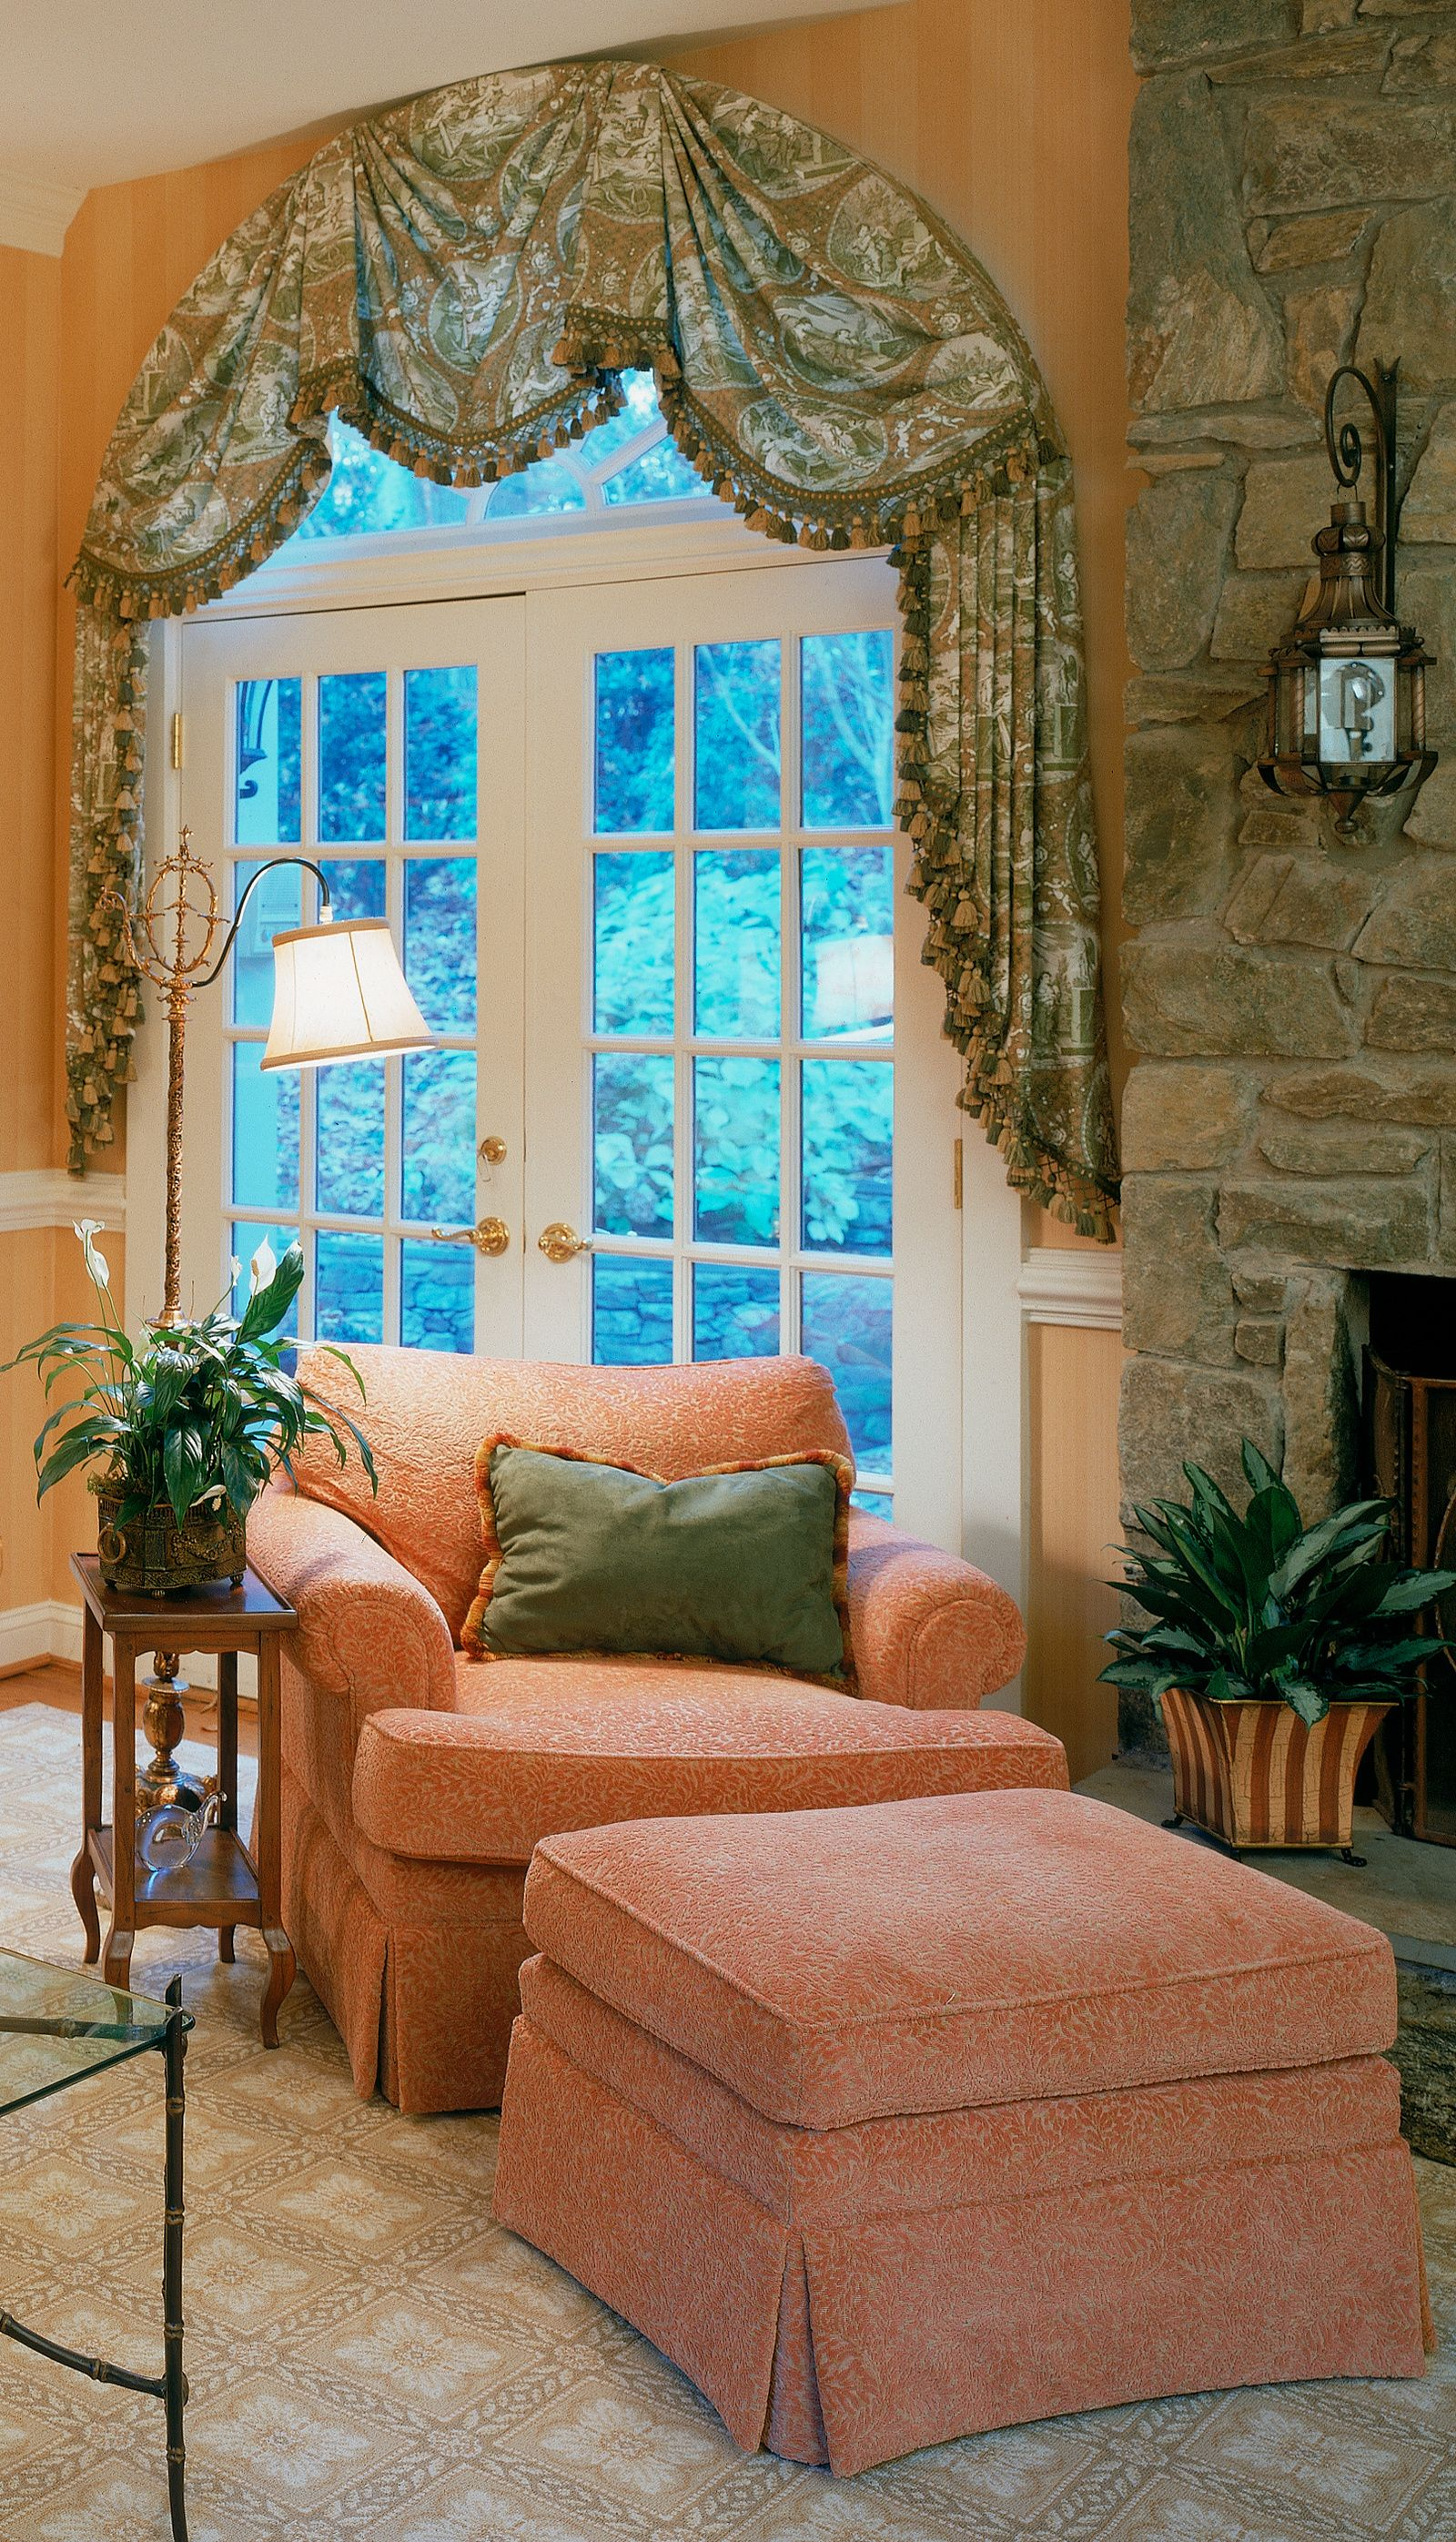 Window treatment ideas for arched windows  pin by marisol gómez on decoración  pinterest  ann window and valance